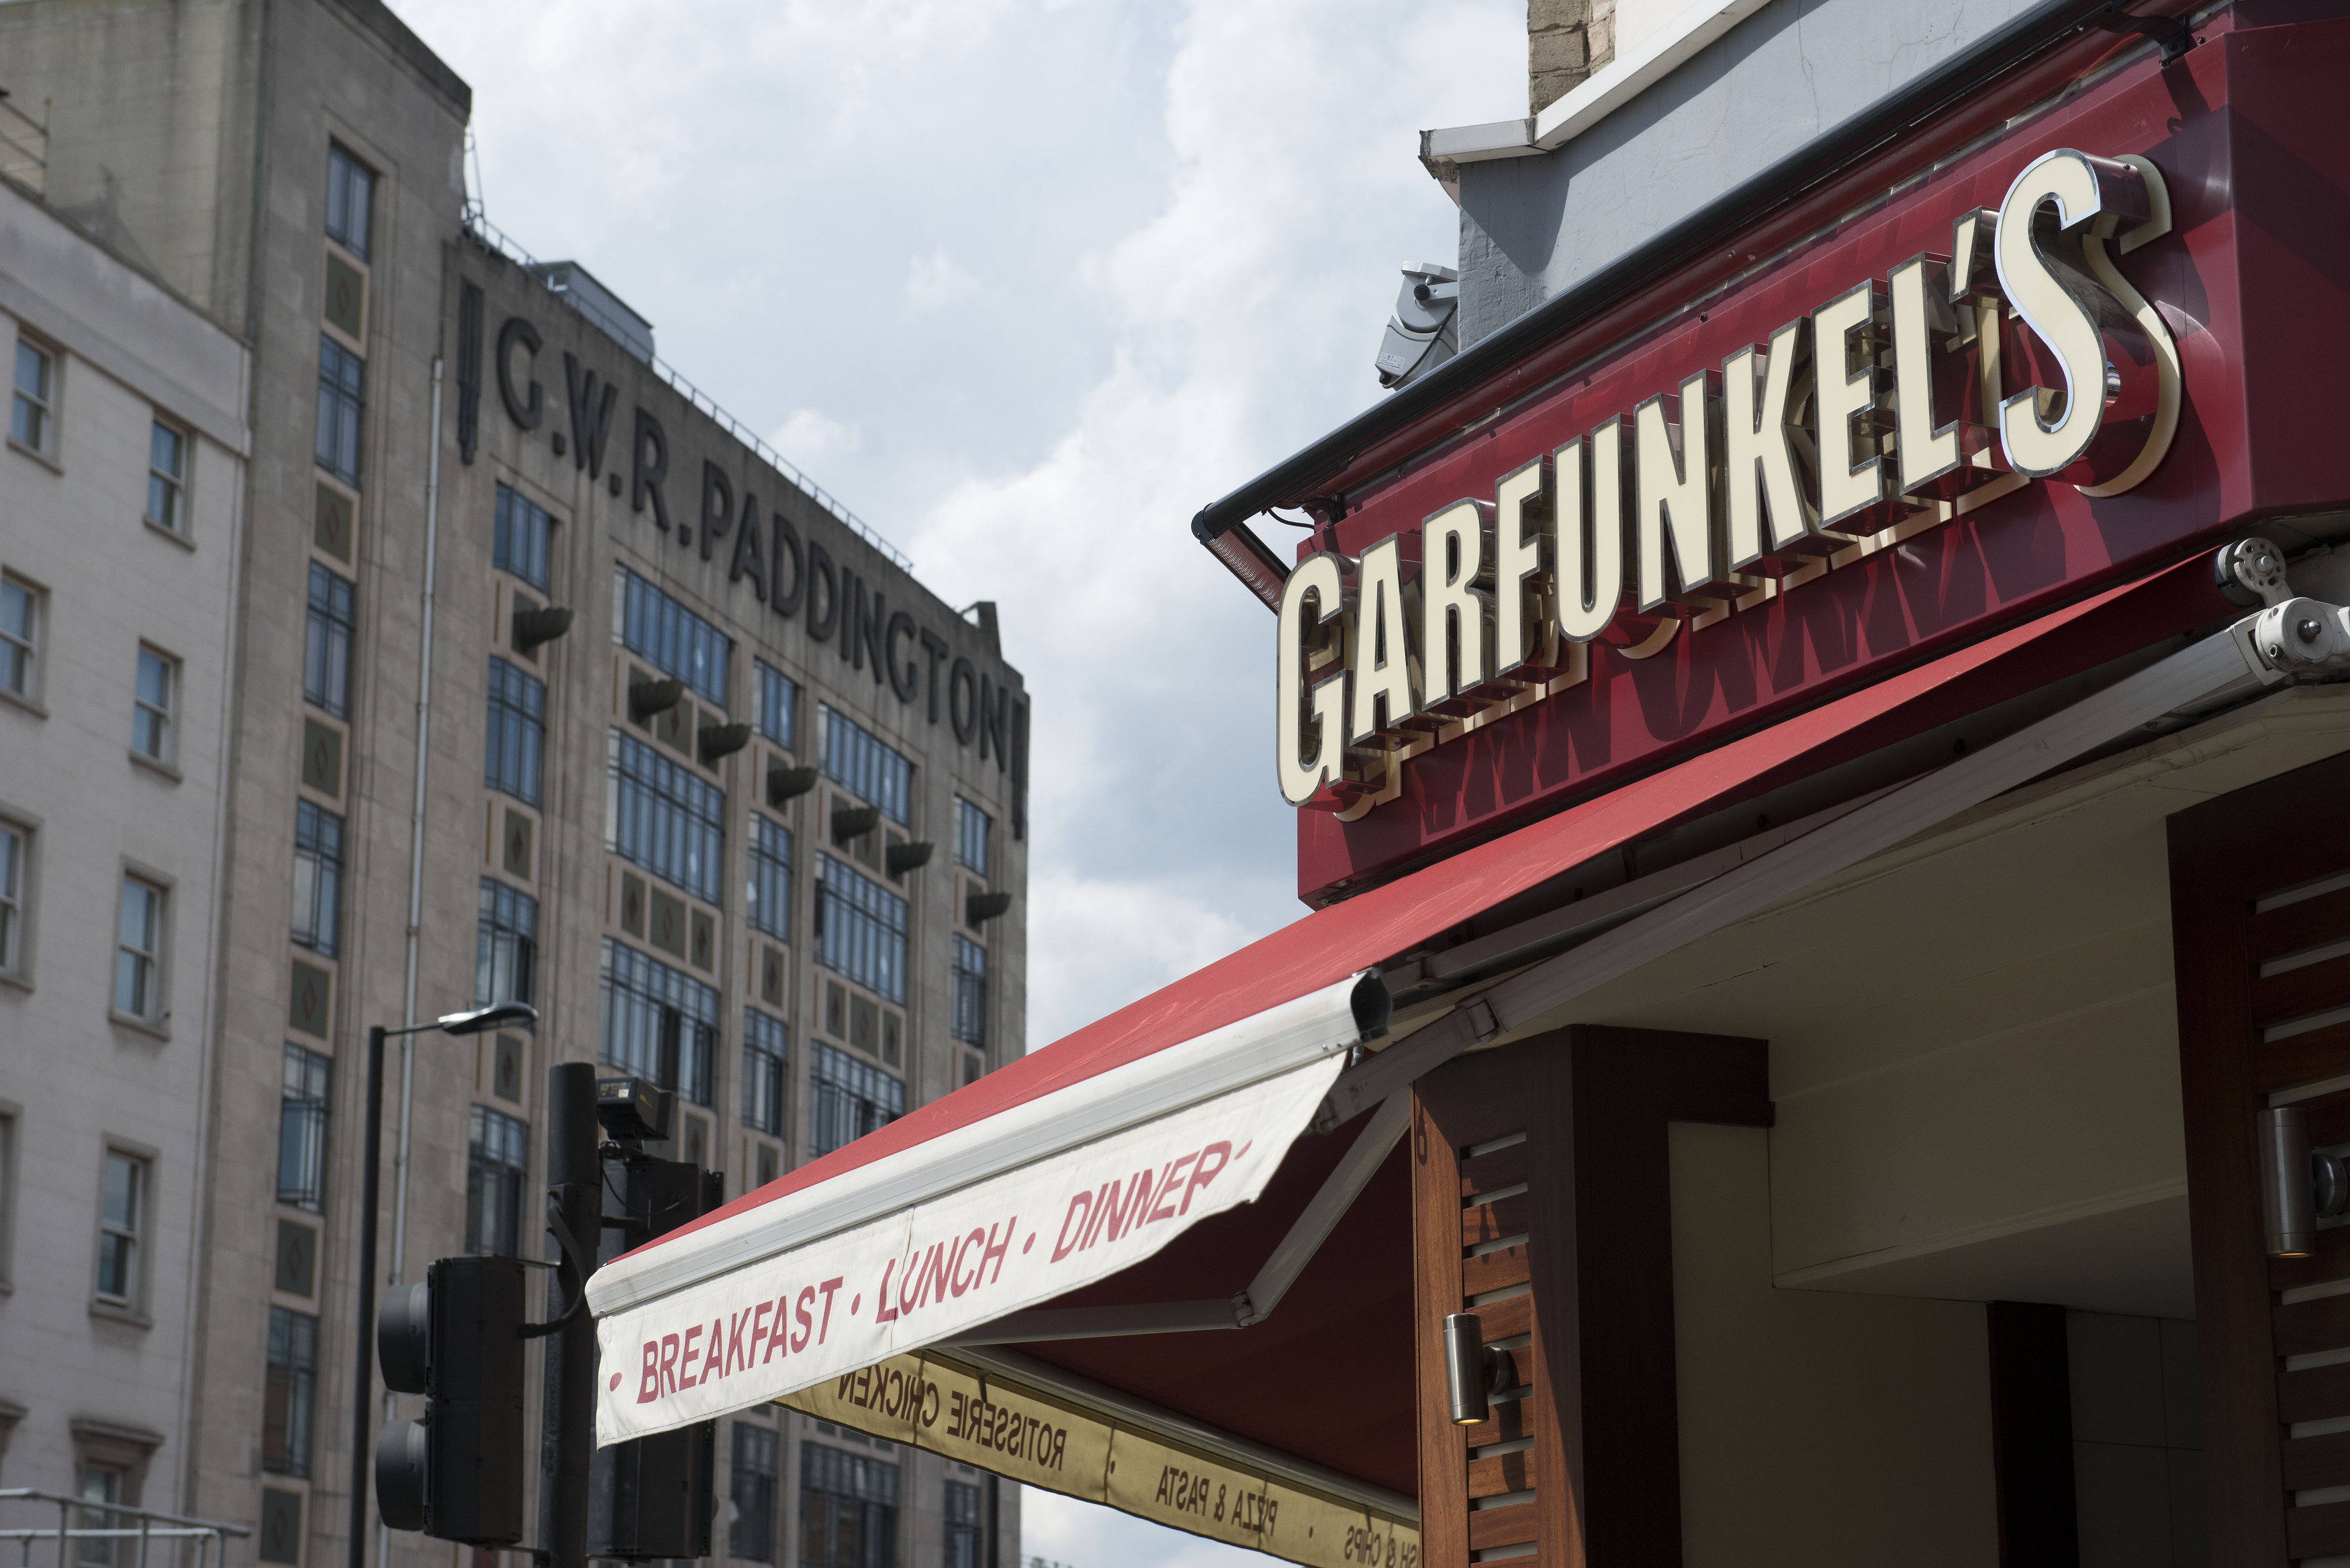 Garfunkel's - Paddington - London